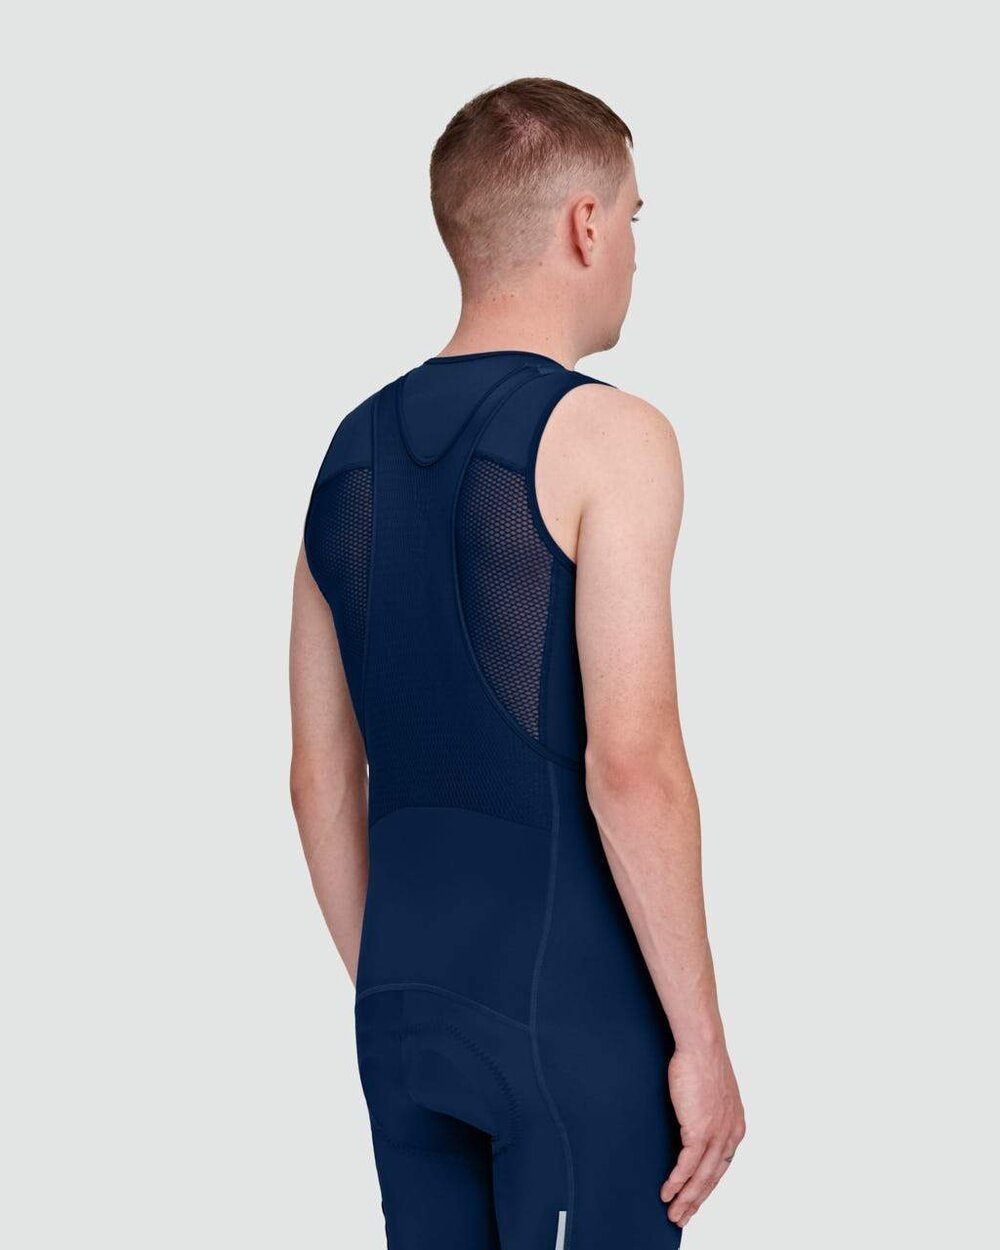 Team Base Layer - Navy Technical Base Layer MAAP